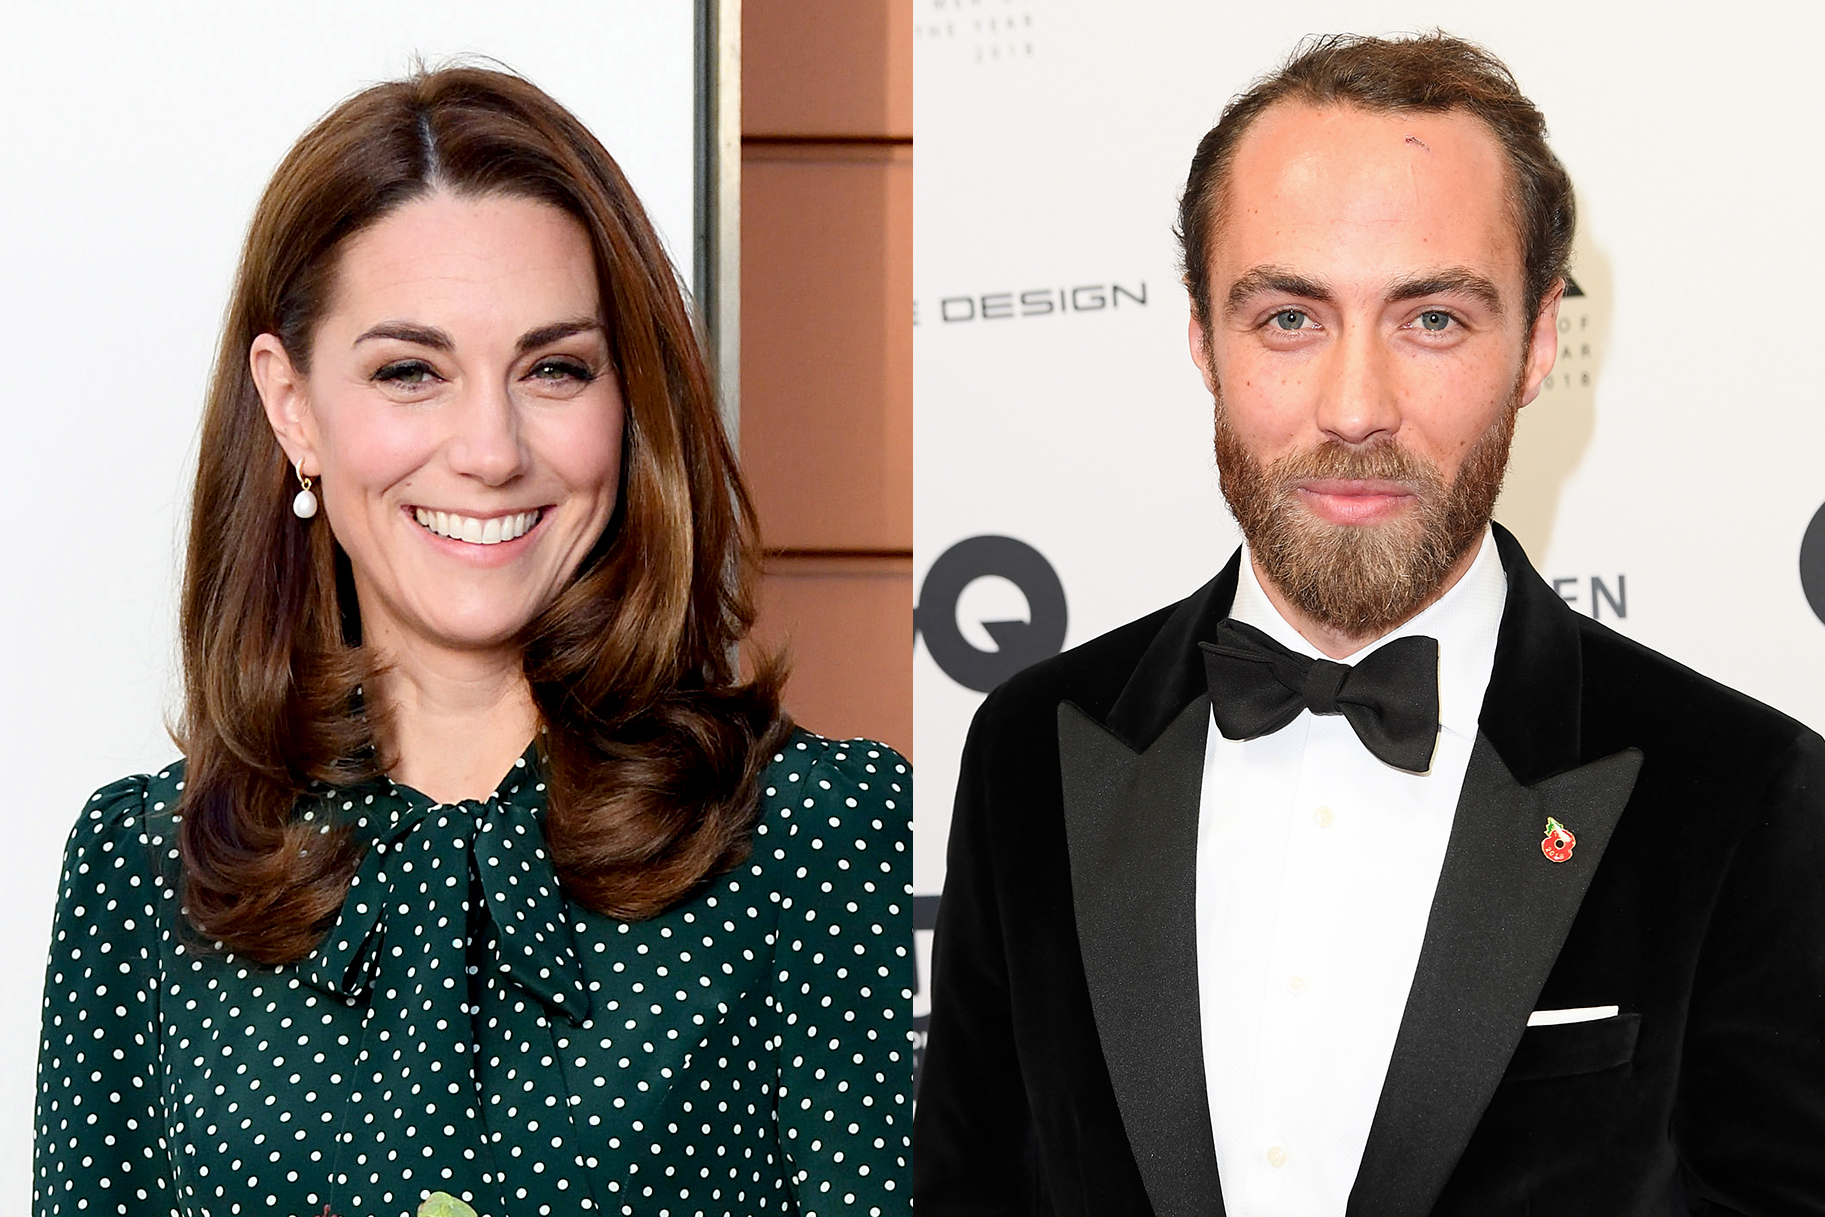 Image result for kate middleton and brother